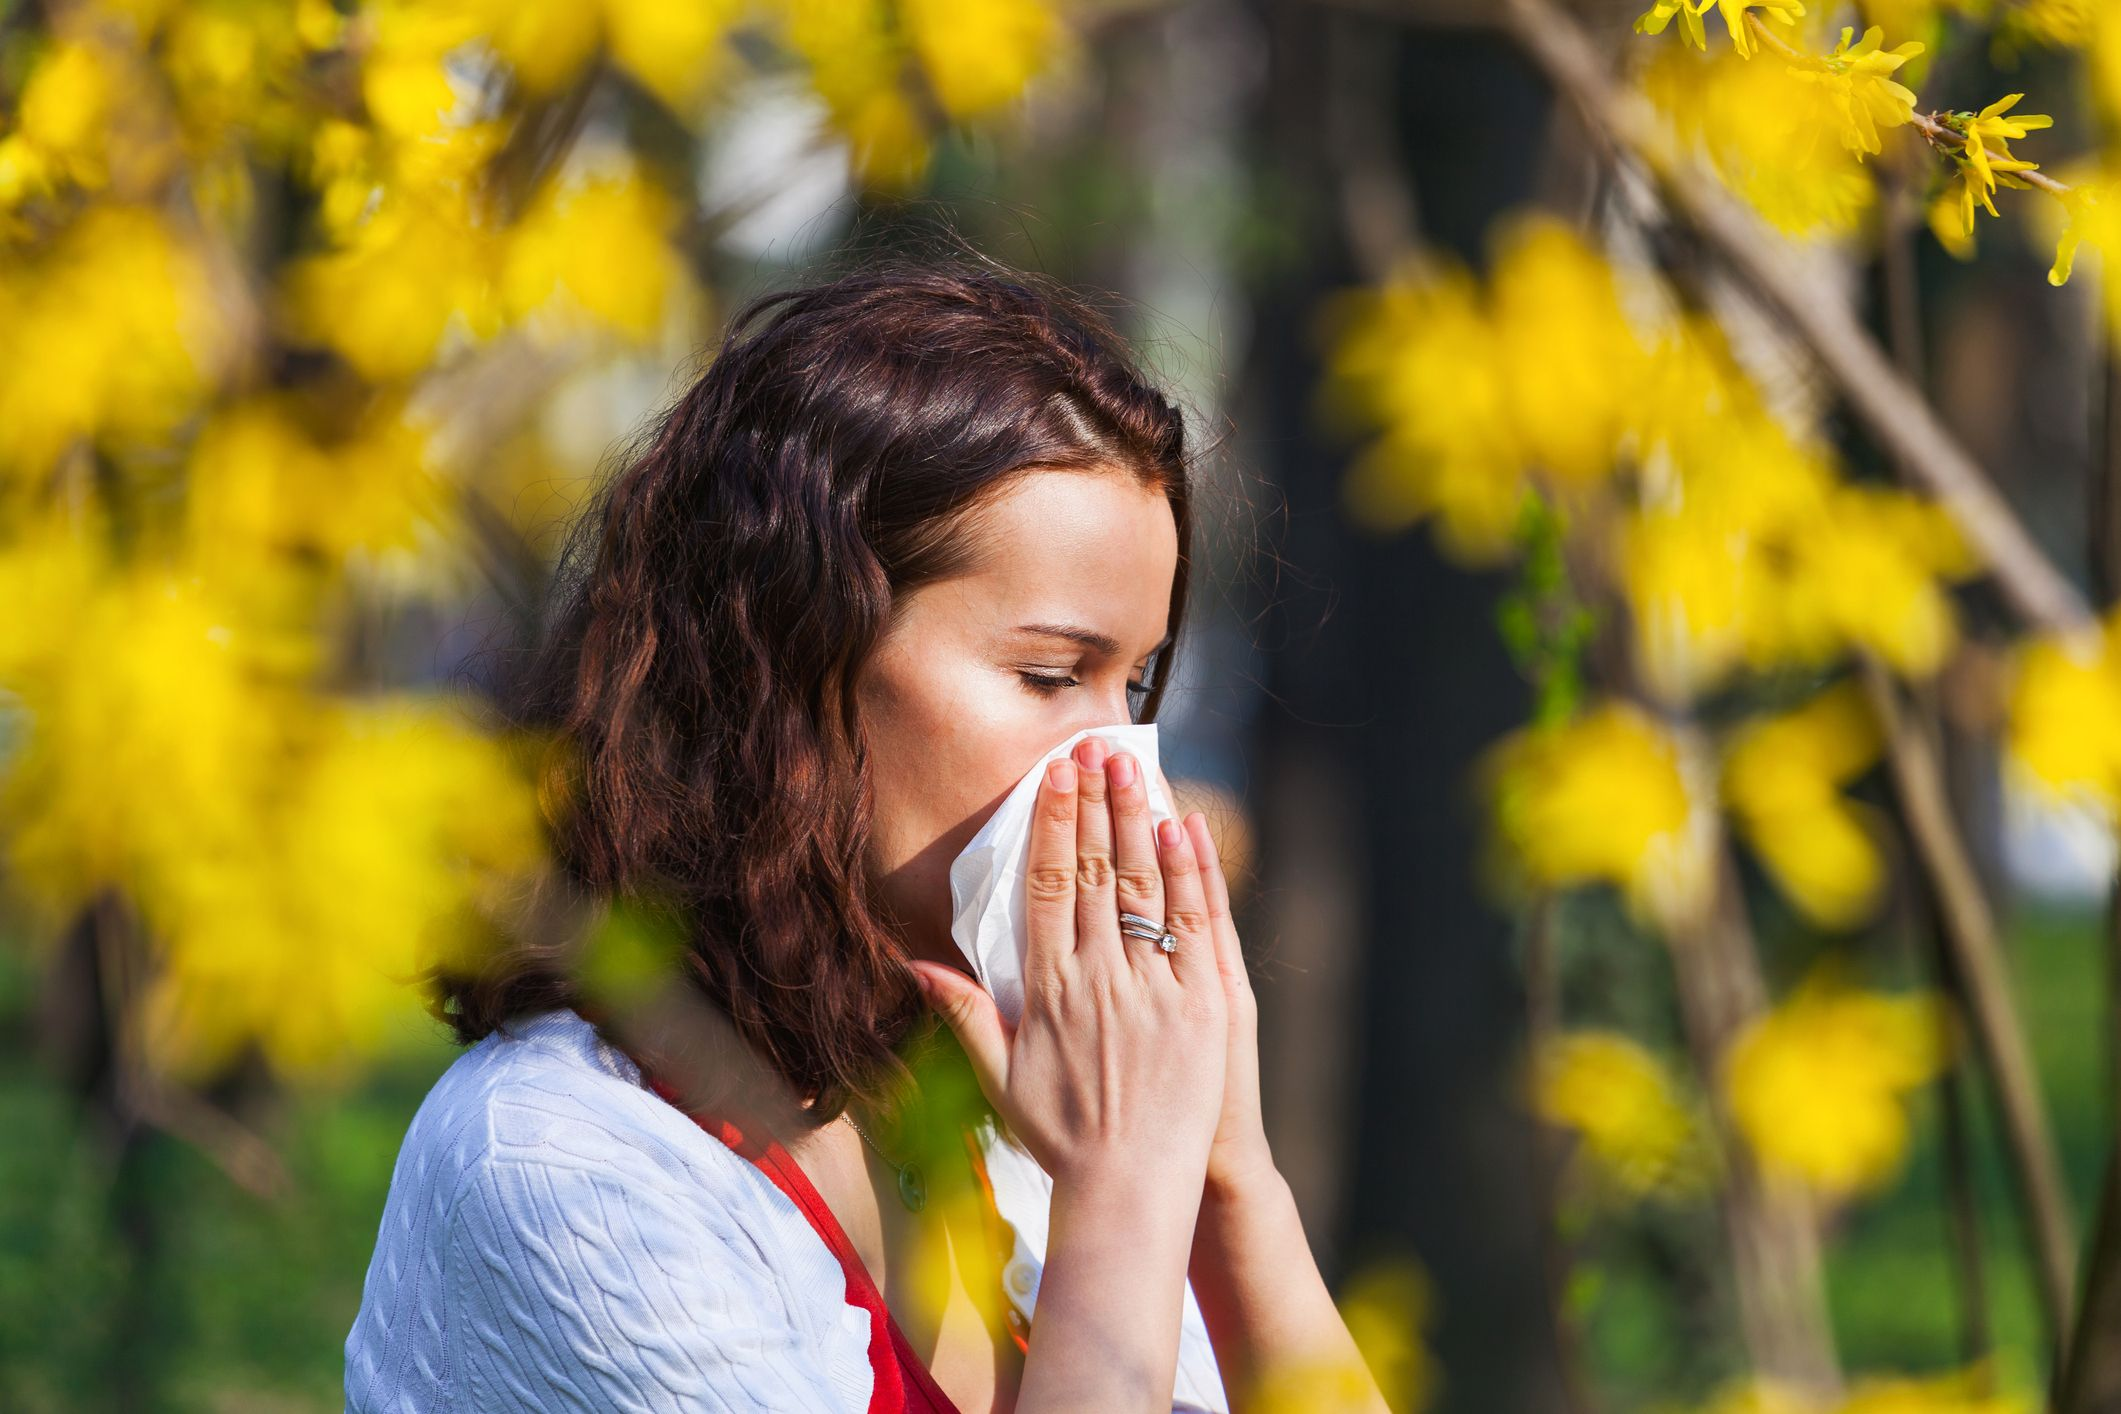 Common Spring Allergy Symptoms - How to Identify and Treat Spring Allergies